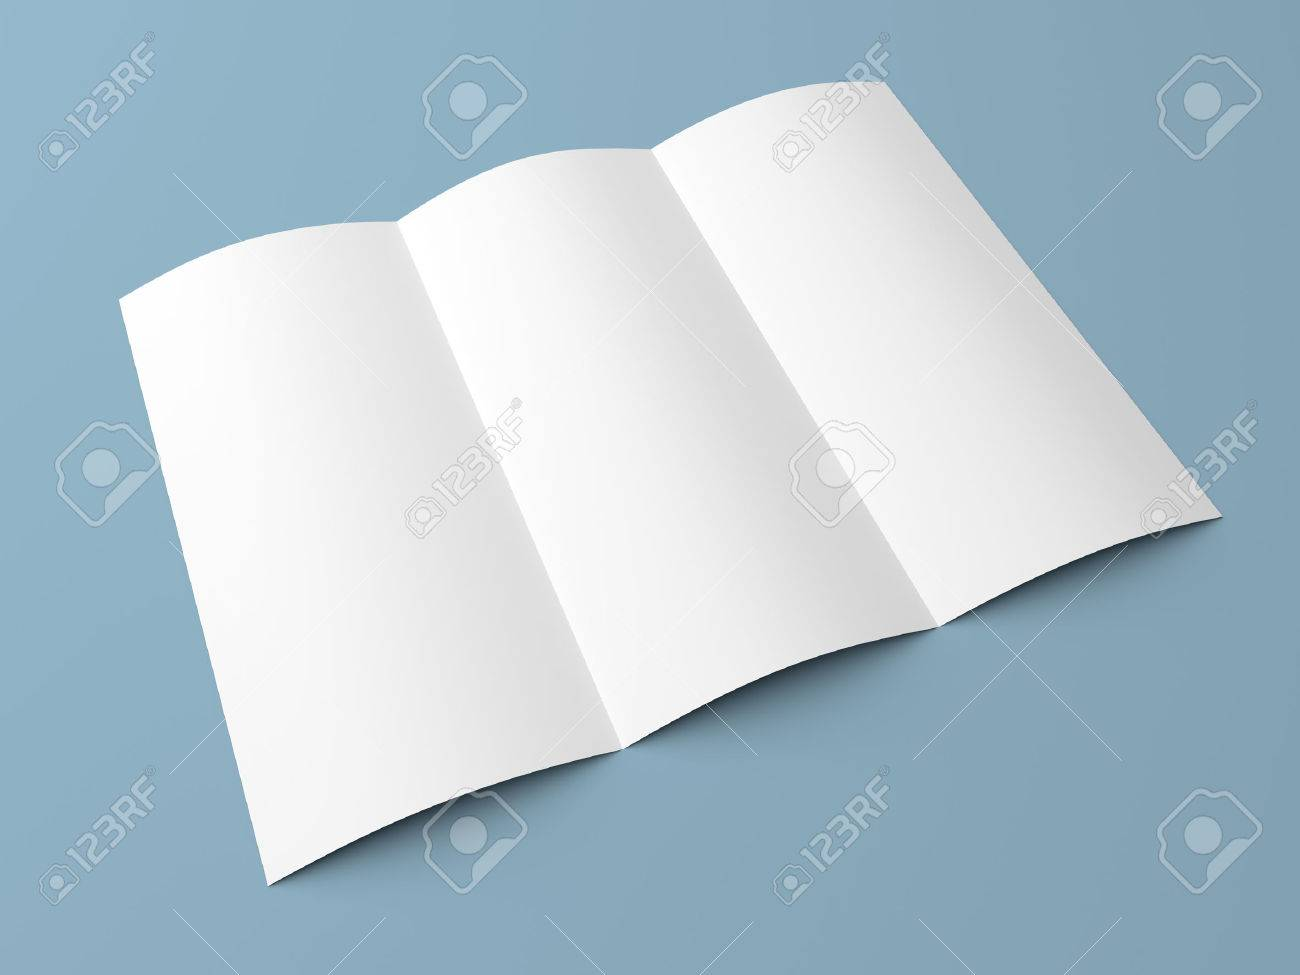 leaflet blank tri fold white paper brochure mockup on blue